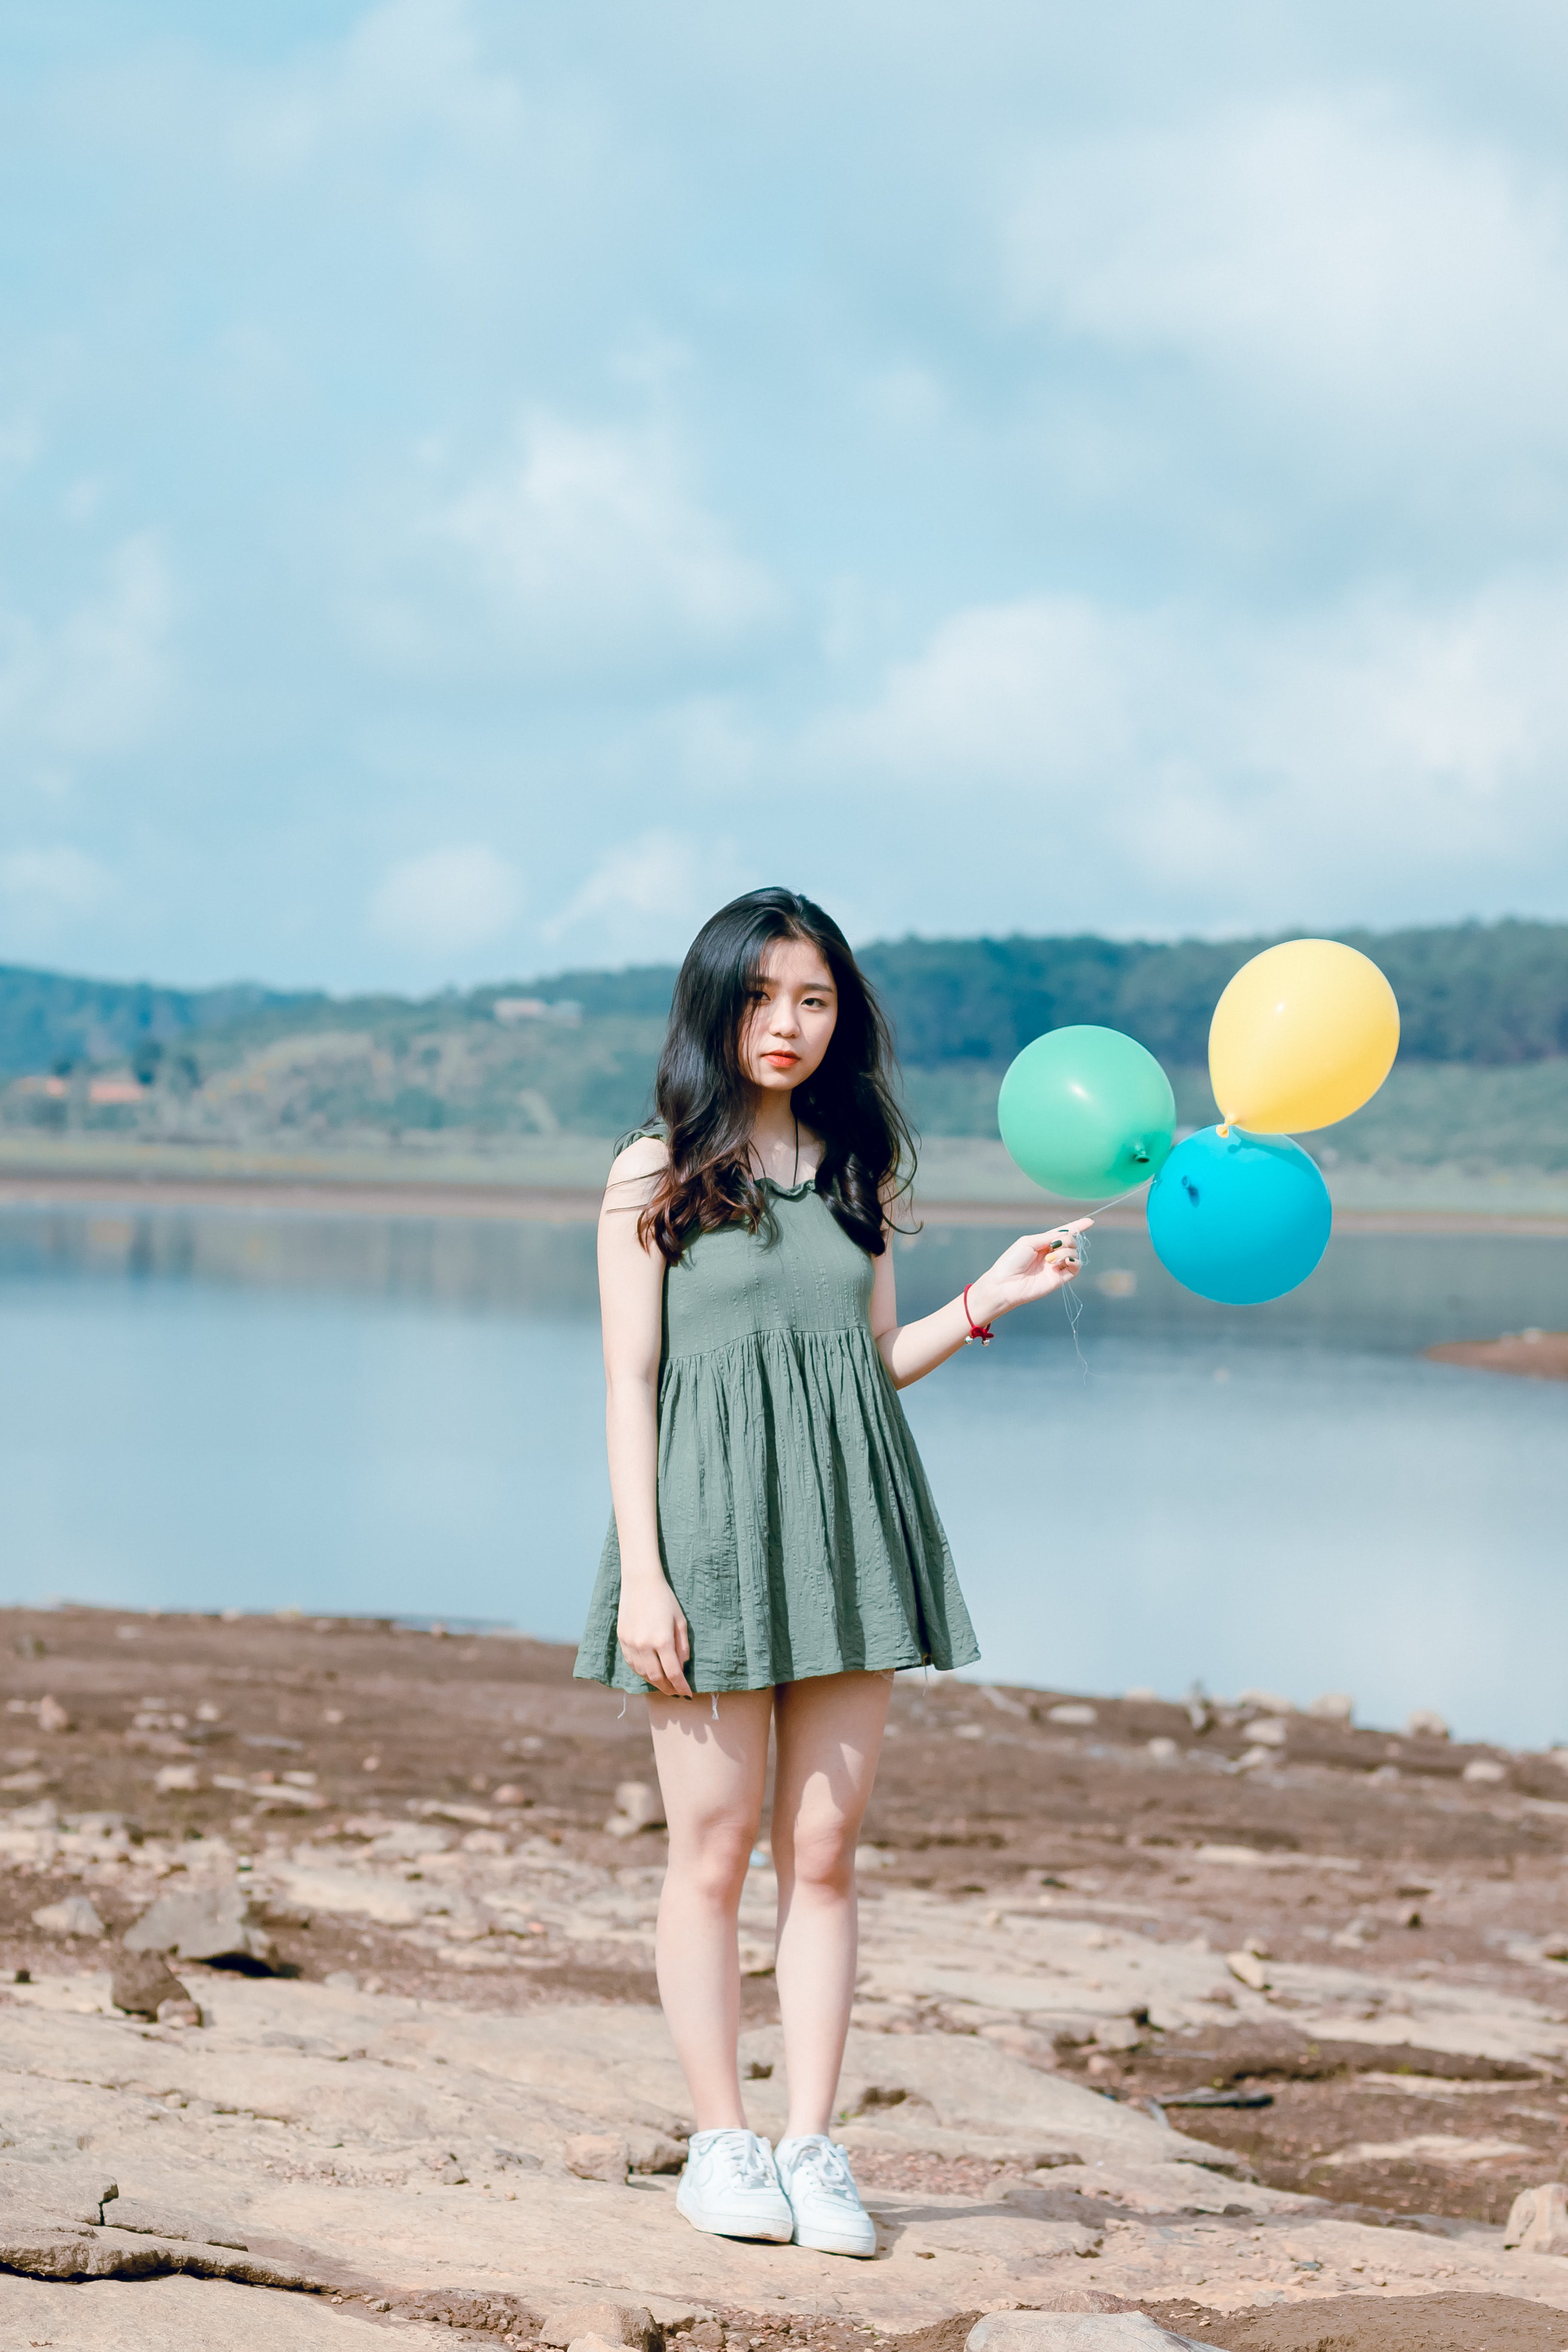 Photo of Girl Wearing Green Mini Dress Holding Balloons